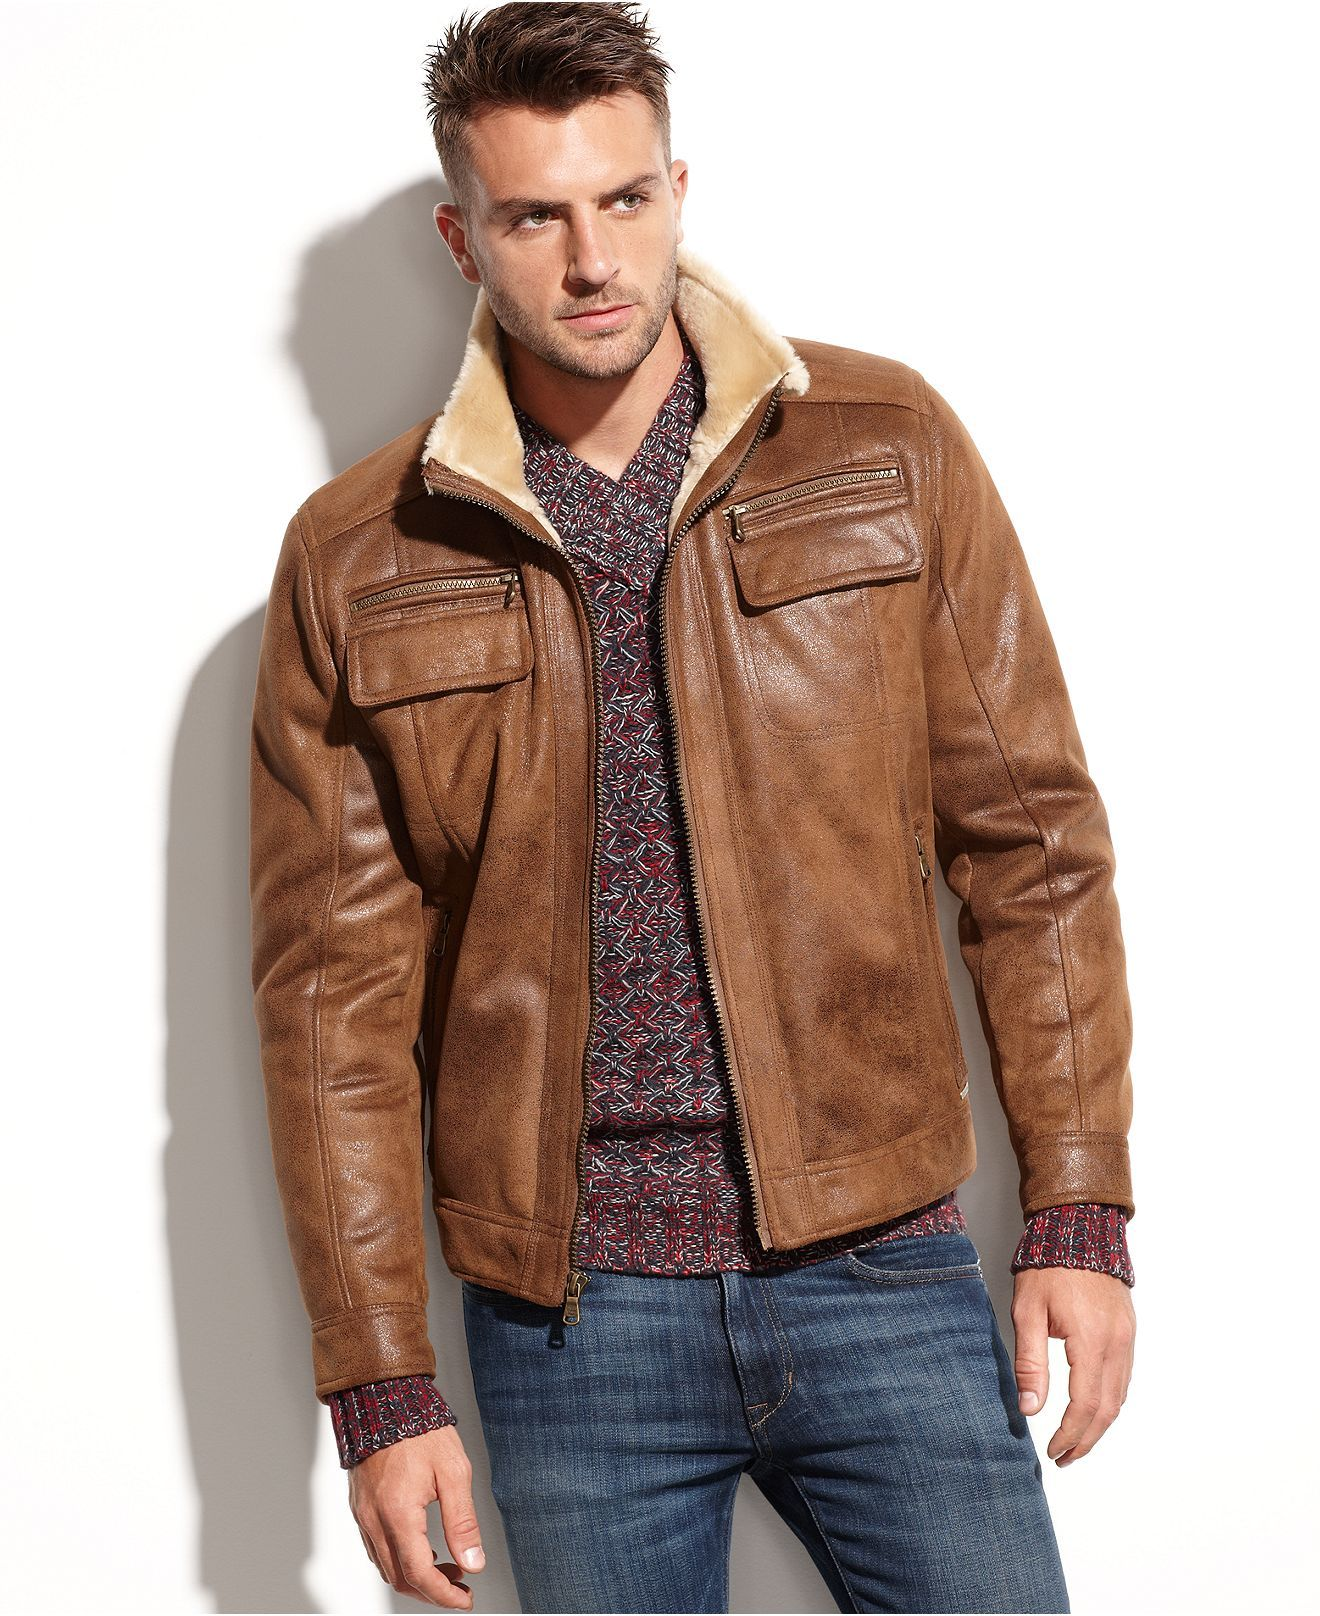 9f8322b06 Calvin Klein Jacket, Faux Shearling-Lined Faux Leather Jacket - Coats &  Jackets - Men - Macy's